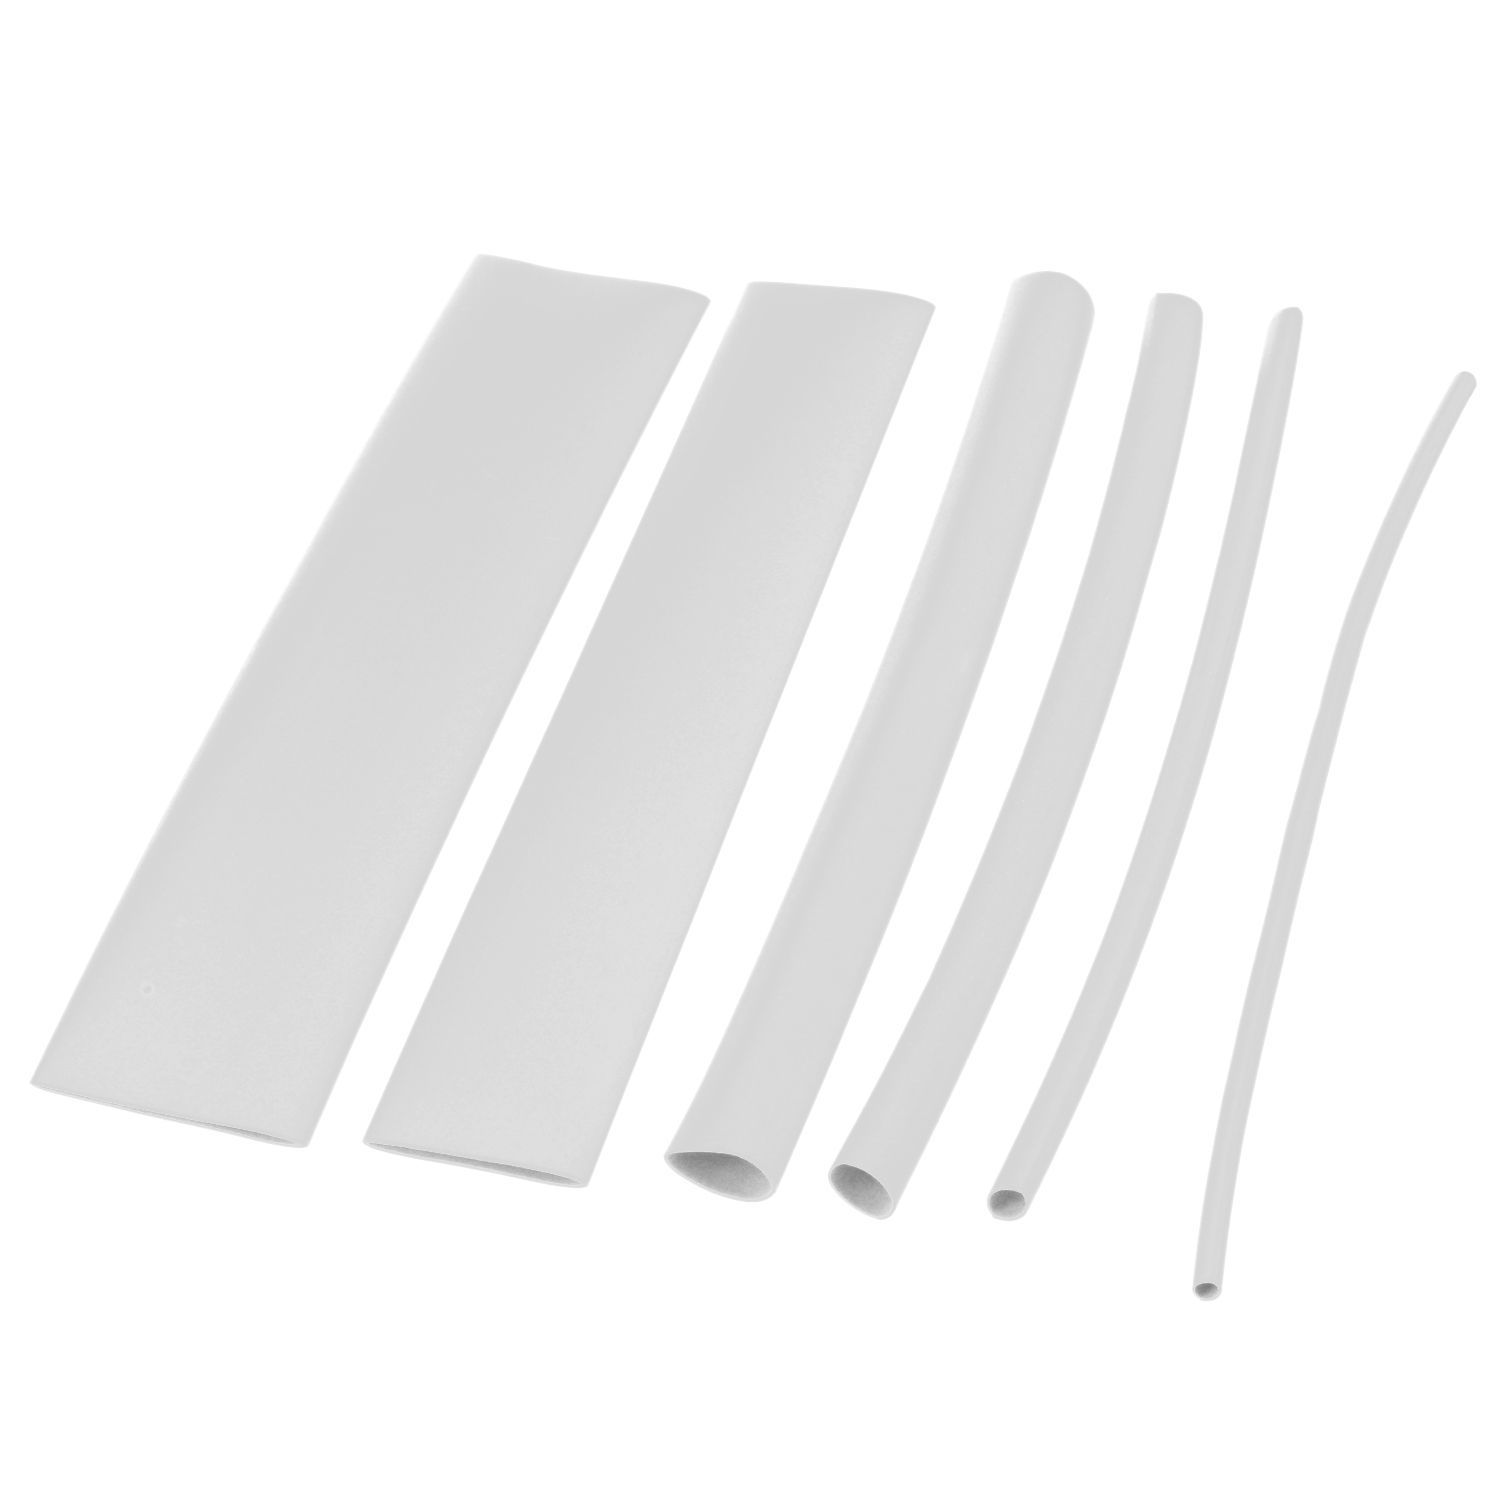 20pcs 10cm White 3//4:1 Heat Shrink Tubing Wire For Android iPhone Data Cable